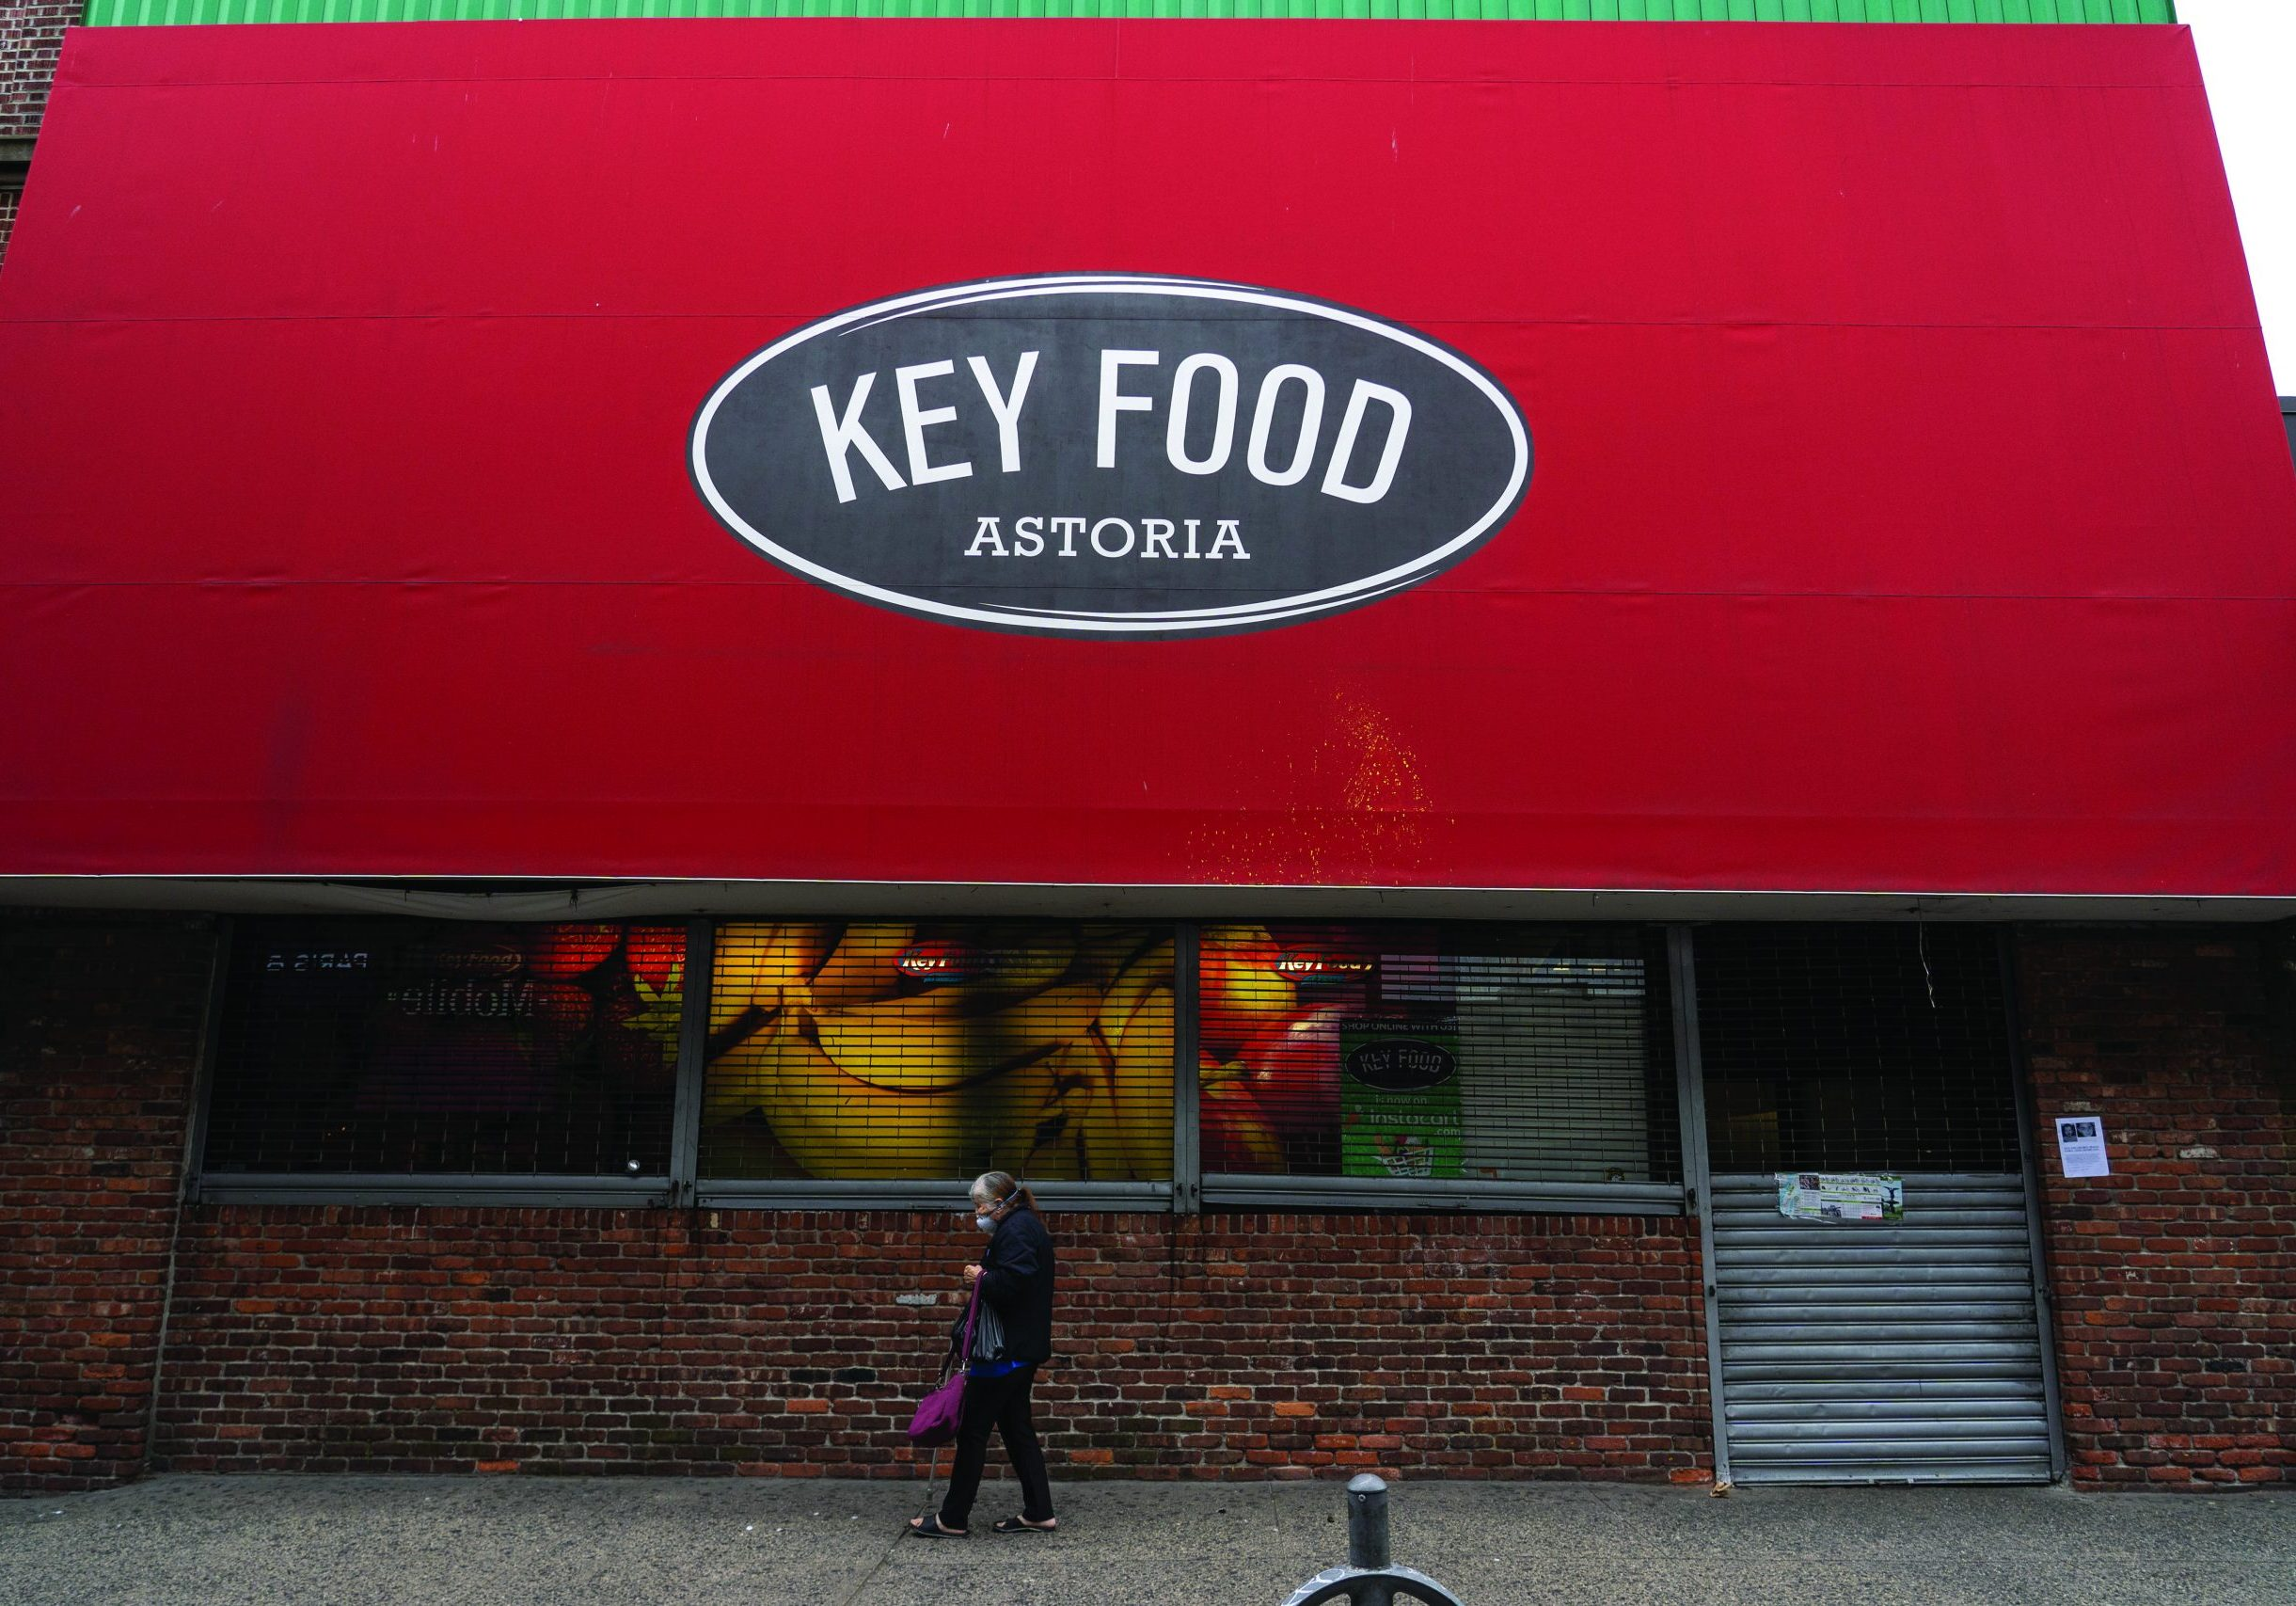 NEW YORK, NY OCTOBER 11: Astoria Key Food Supermarket is seen closed for business following rent impasse on October 11, 2020 in New York City. A Target store is set to open in its place.